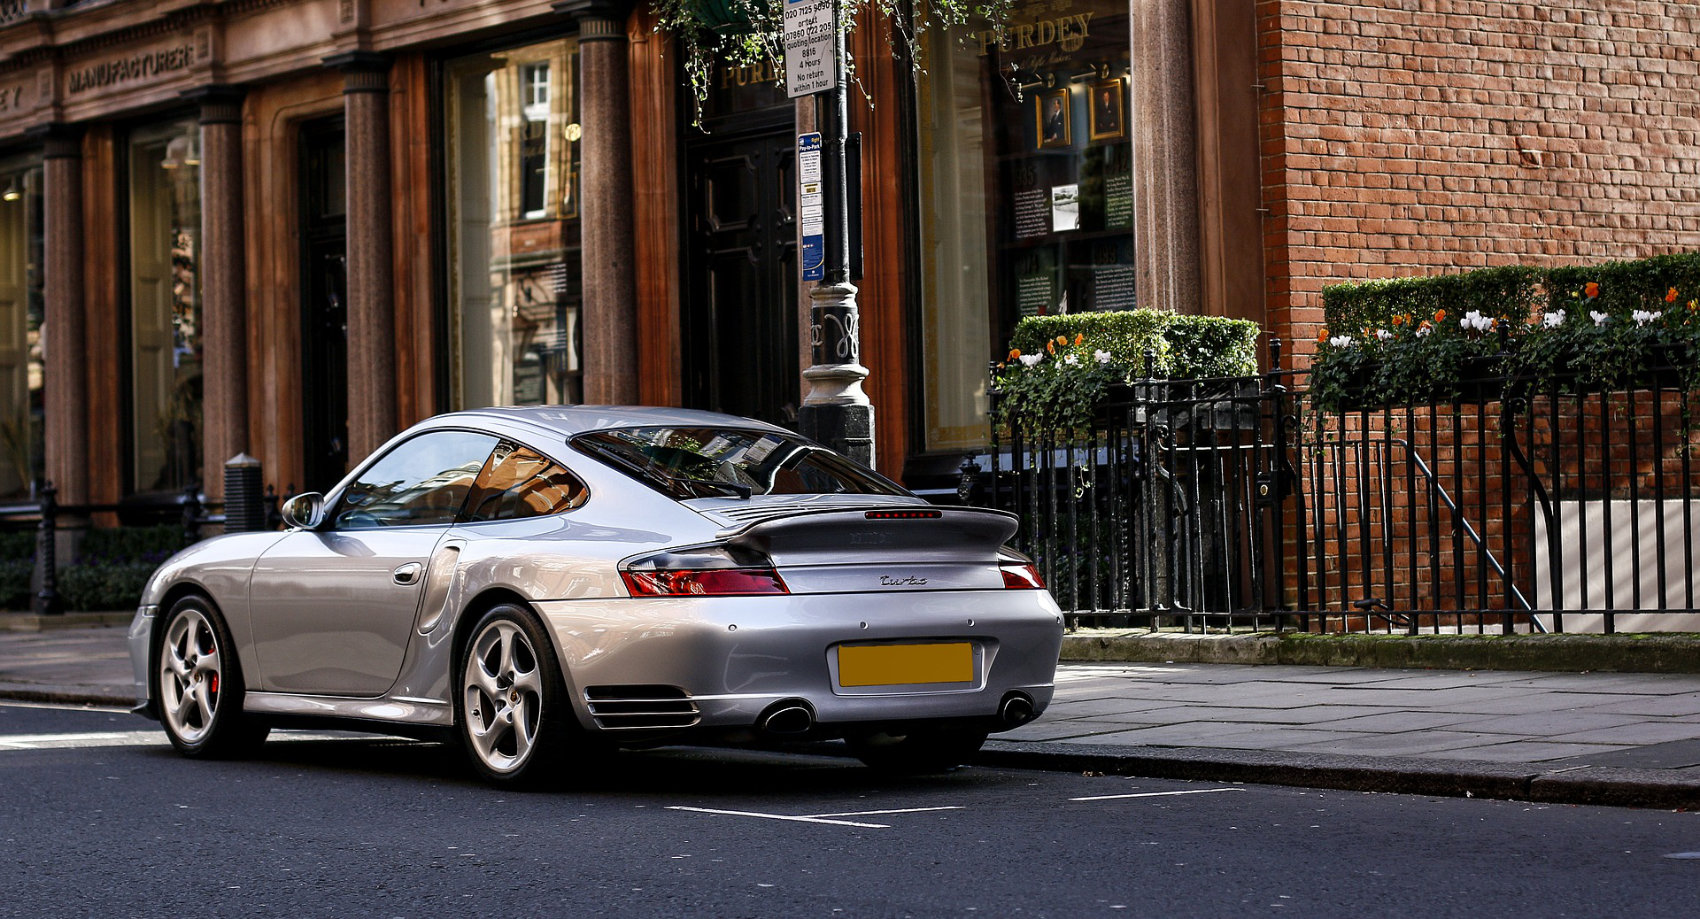 Porsche 911 Turbo 996 - Image by Toby Parsons